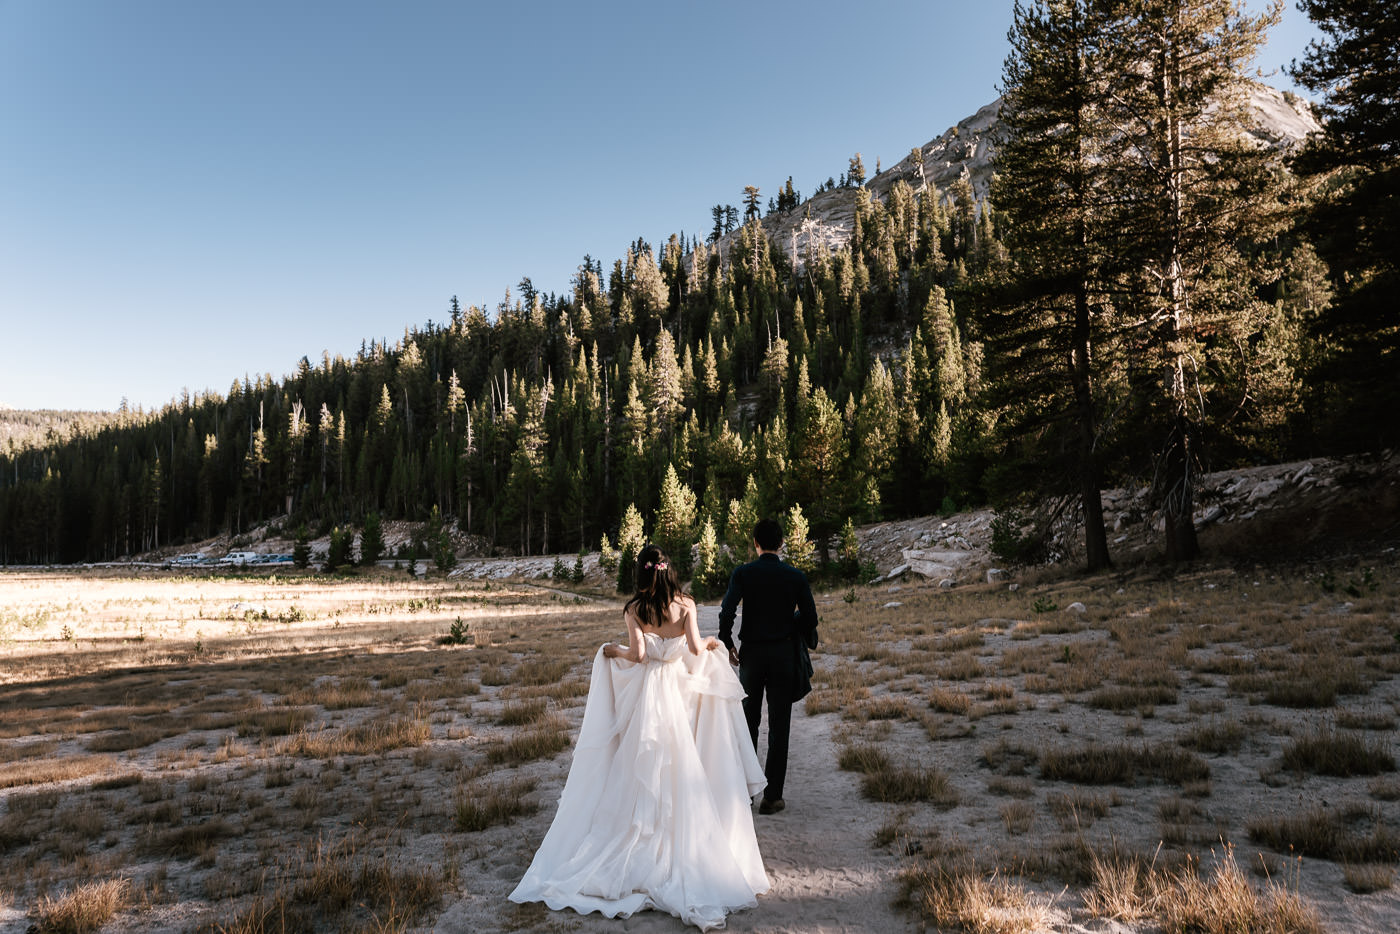 tuolumne-meadows-elopement-yosemite-15.jpg